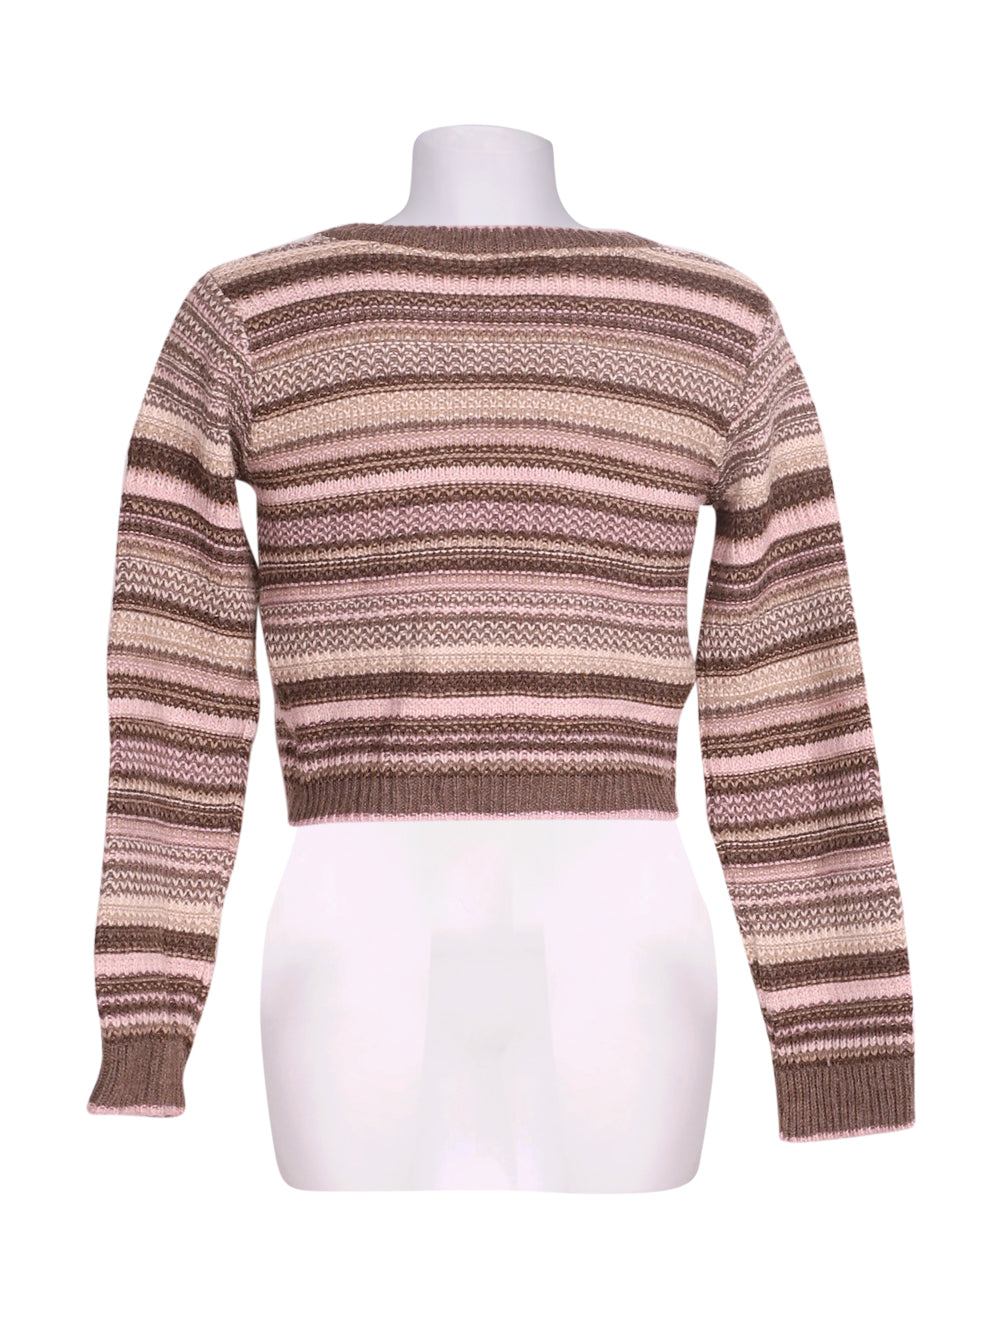 Back photo of Preloved Motivi Brown Woman's bolero - size 8/S